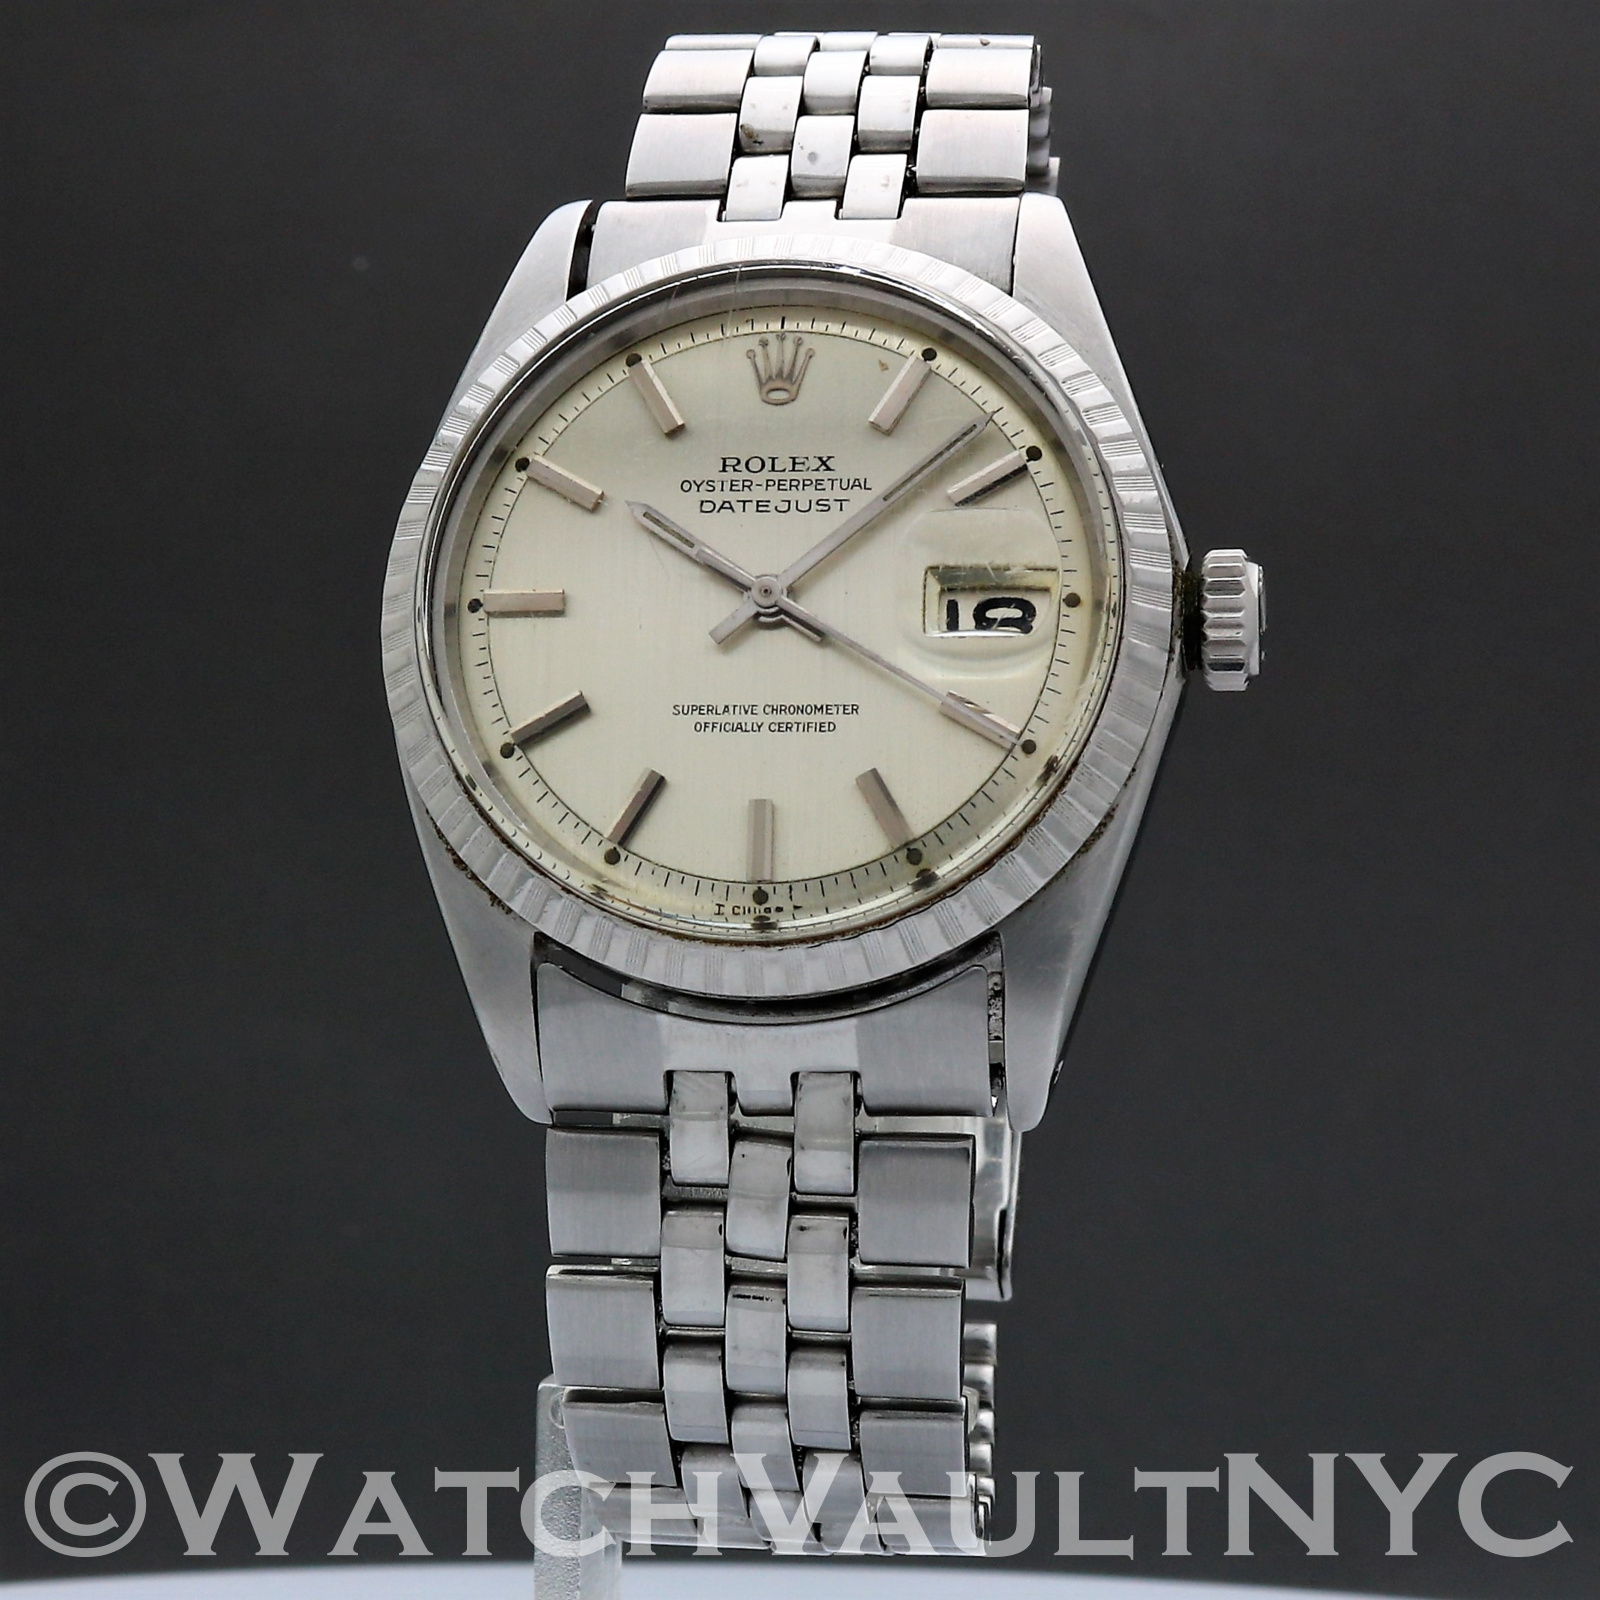 Rolex Oyster Perpetual Datejust 1603 Hypen Dial 1966 Vintage 36mm Auto